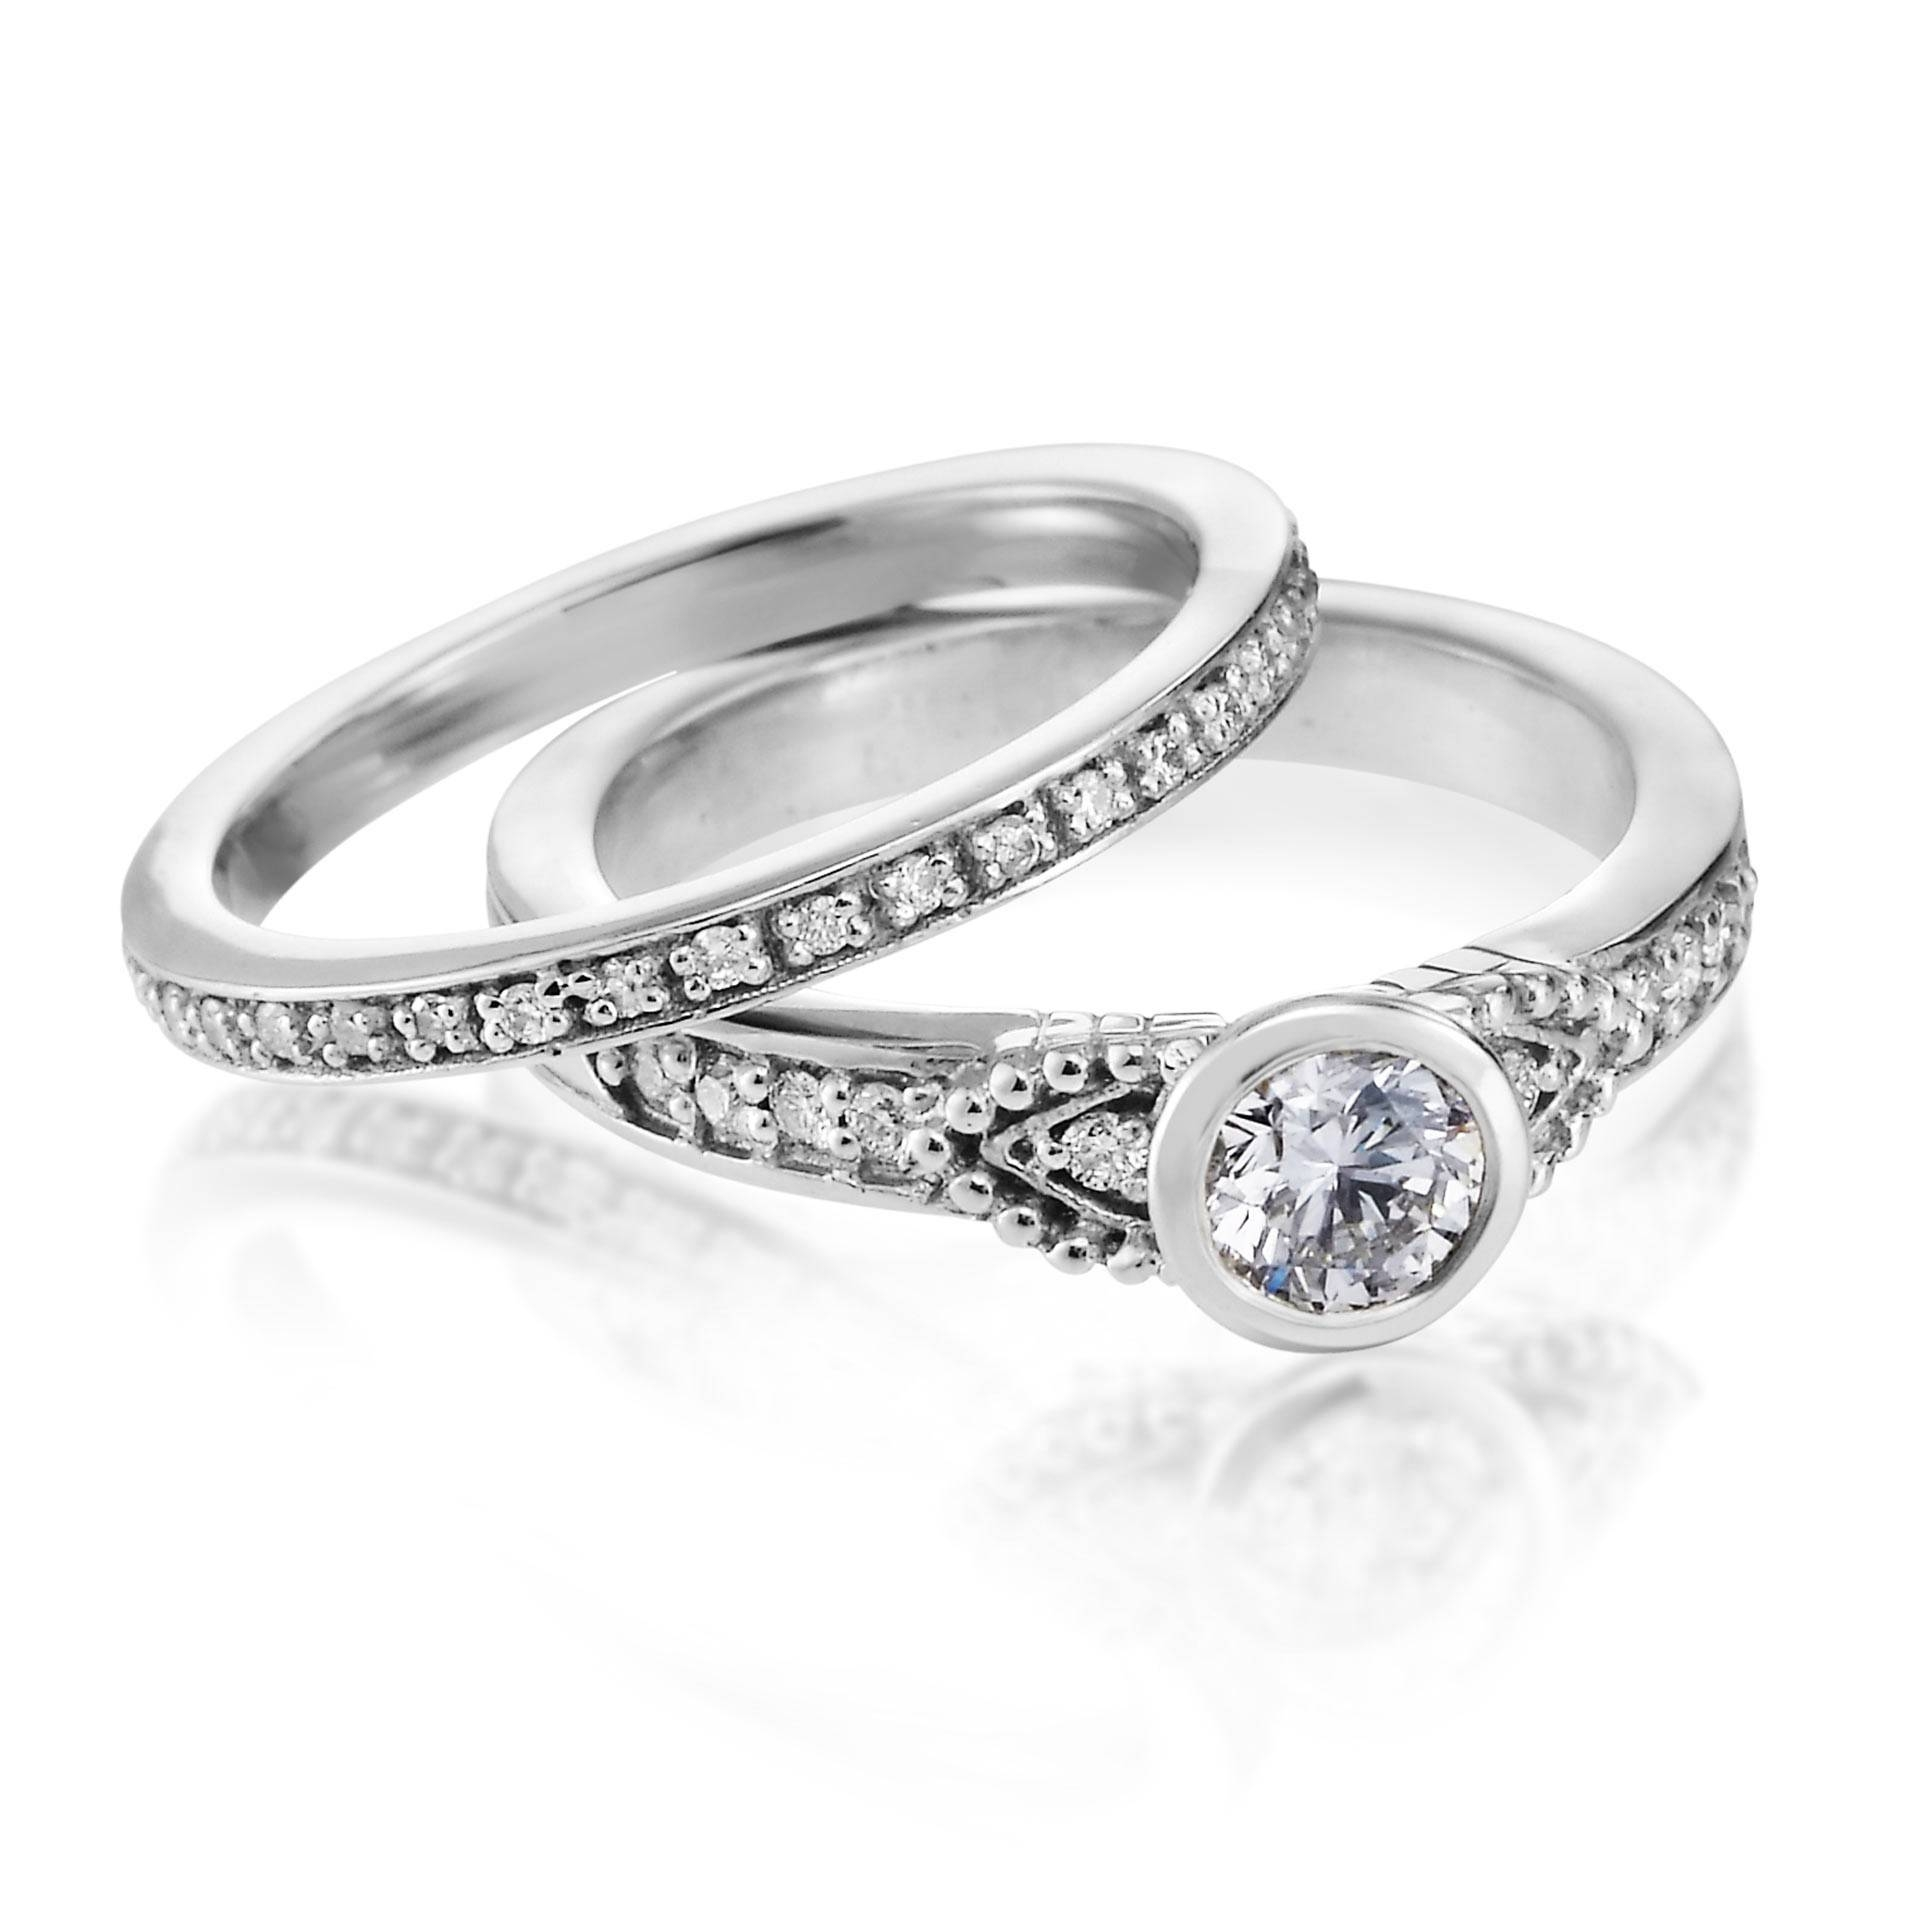 Silver Wedding Ring Wedding Rings Wedding Ring Designs Wedding Pertaining To Womens Silver Wedding Bands (View 9 of 15)